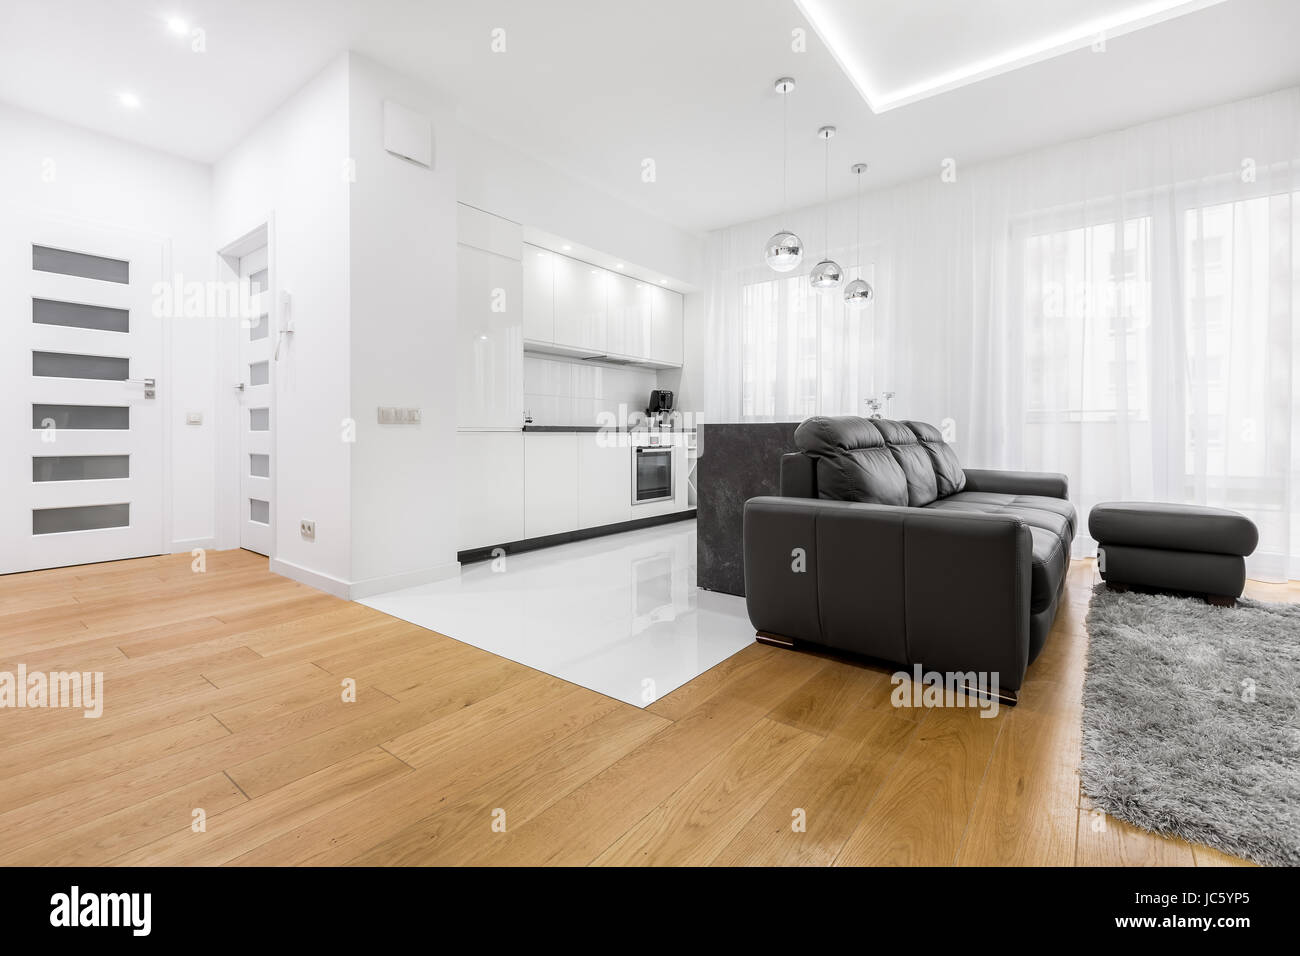 Prime White Living Room With Hardwood Floor And Black Sofa Stock Beatyapartments Chair Design Images Beatyapartmentscom